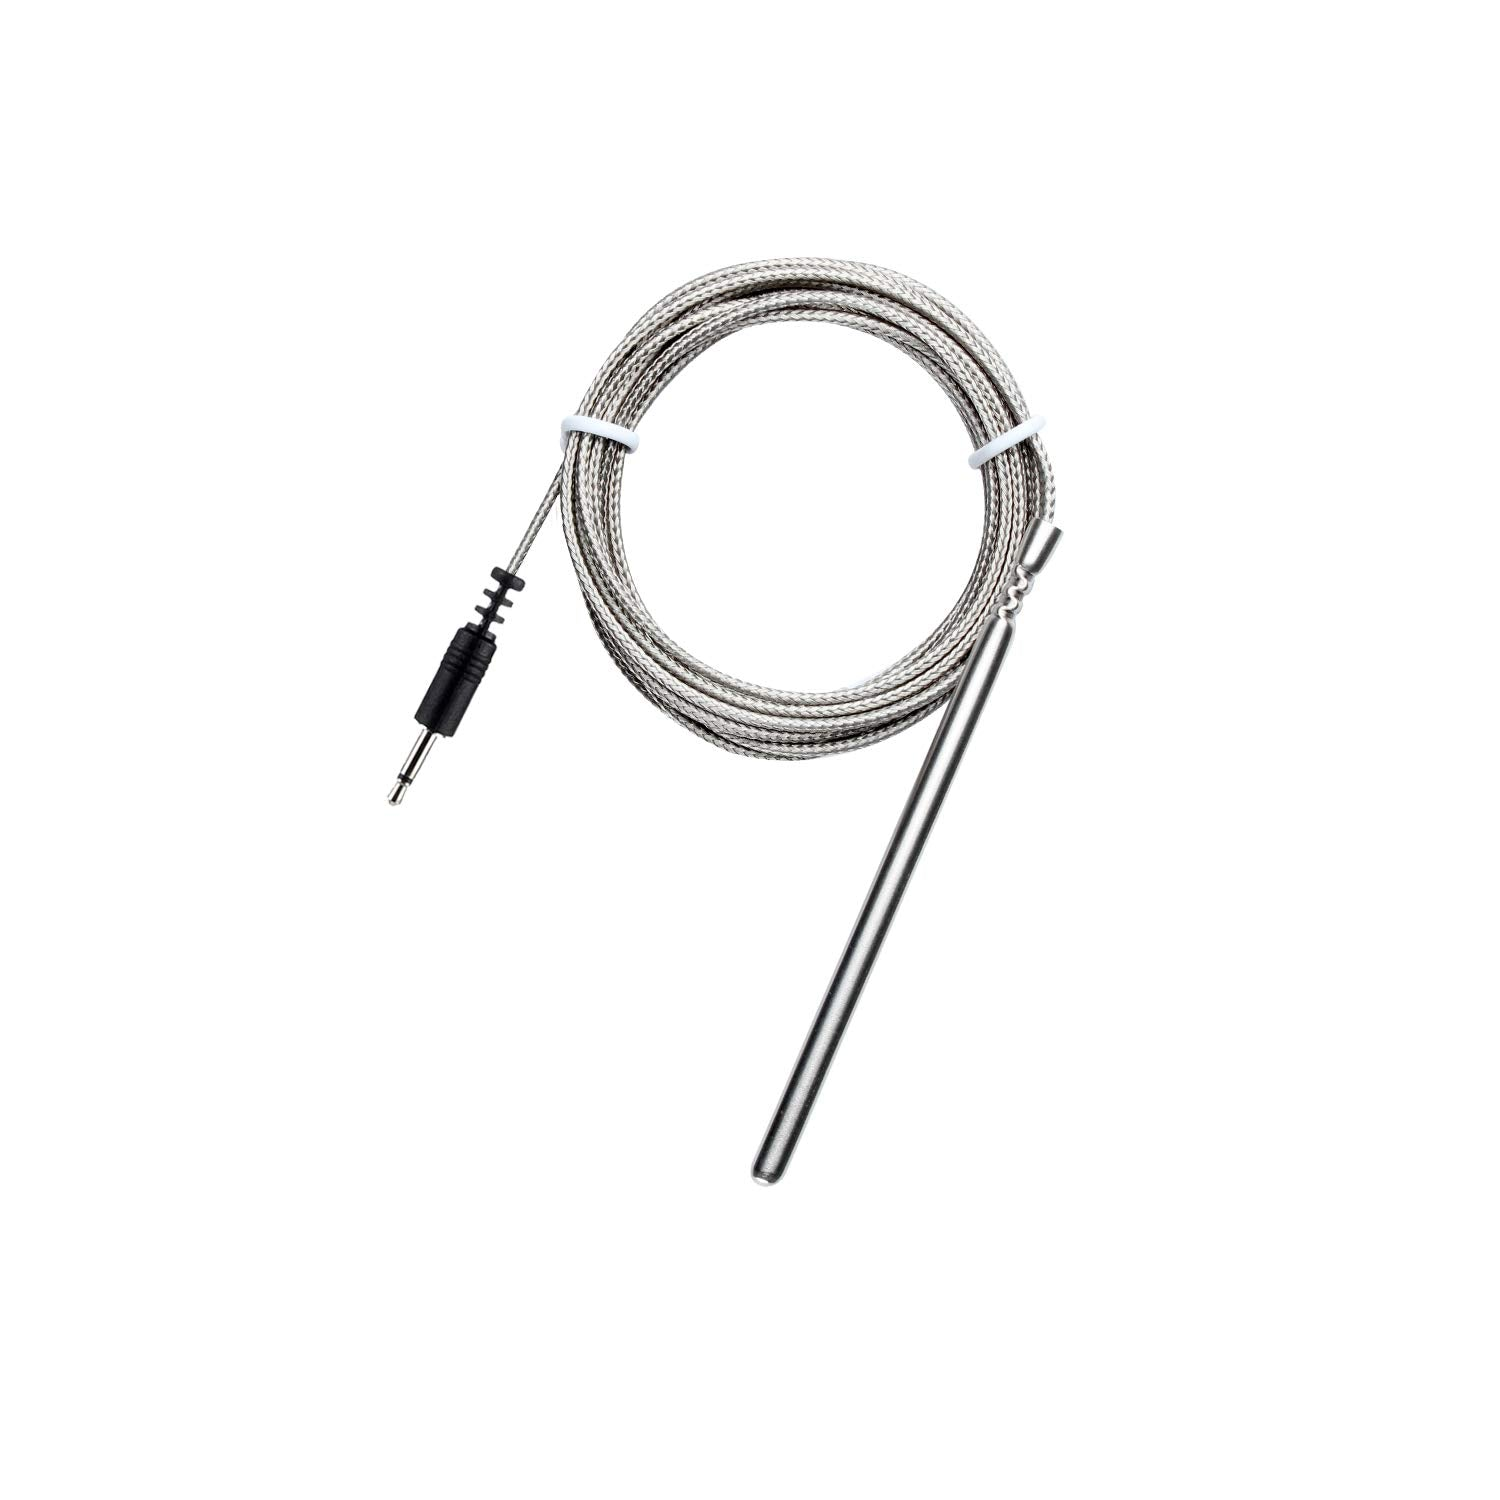 Food-grade Stainless Oven Probe for Inkbird Thermometer IBT-4XS, IBT-4XR, IBT-6XS